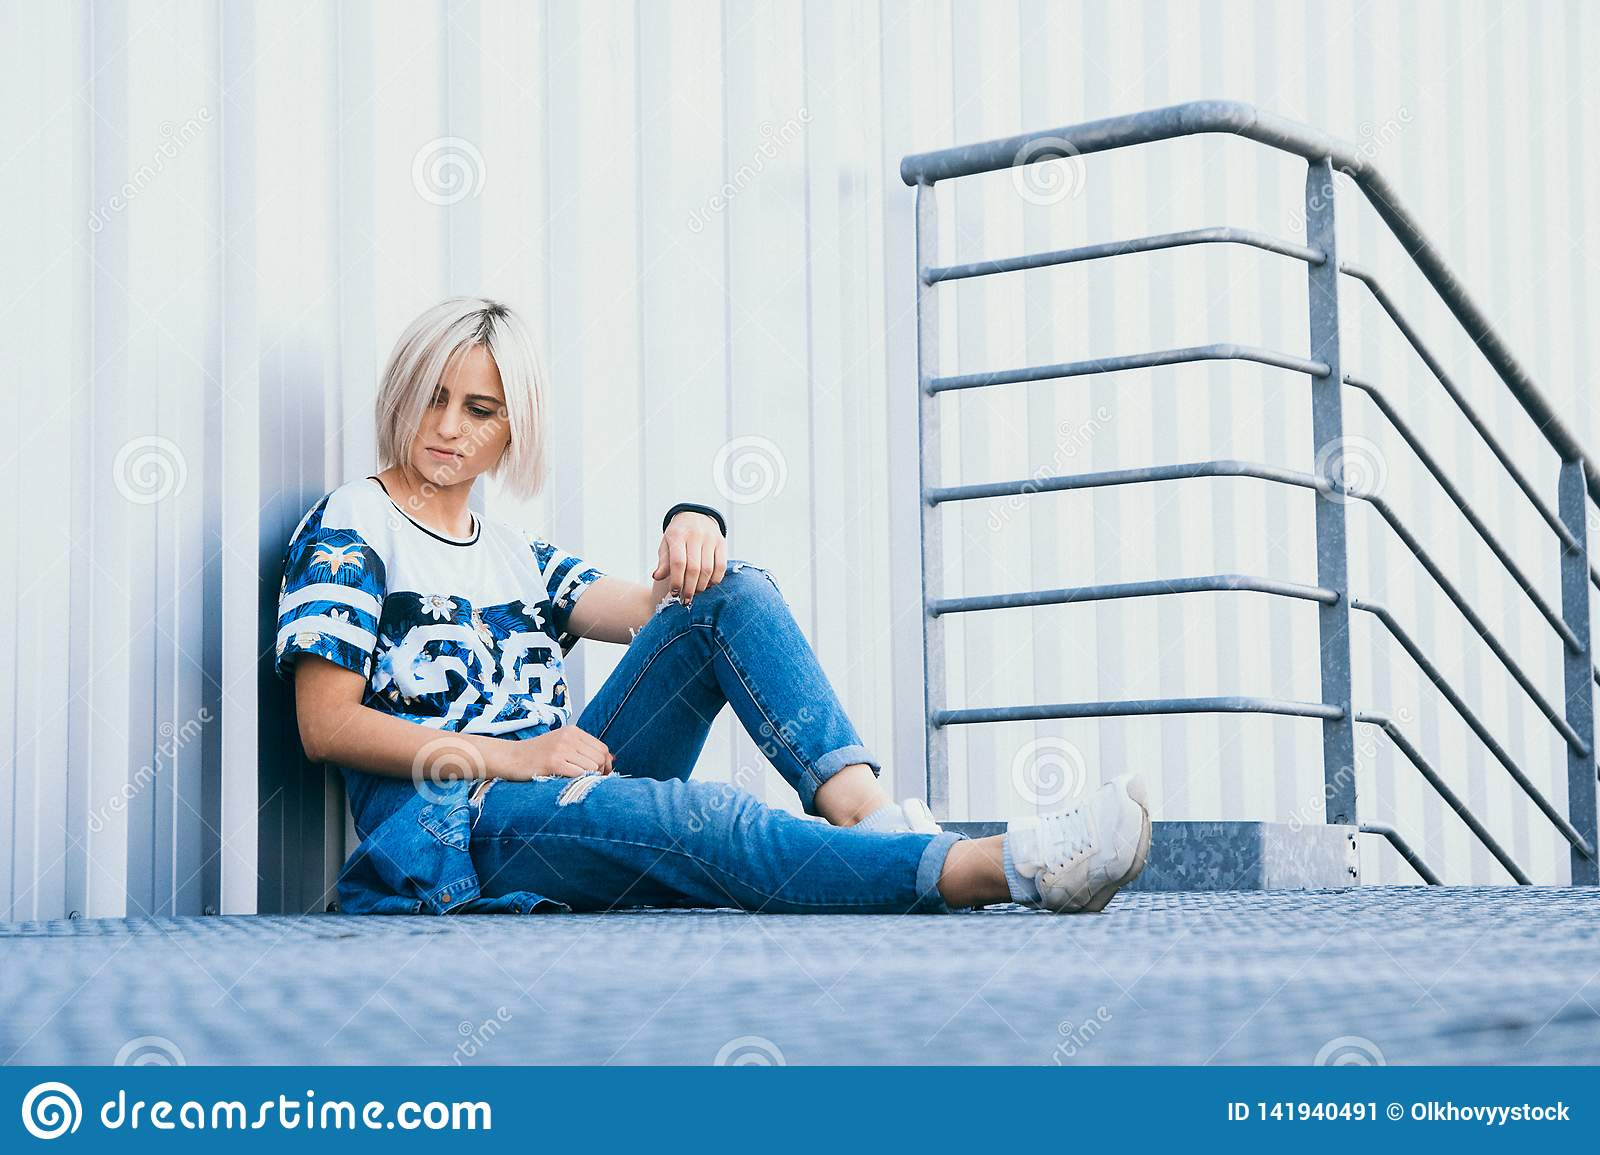 Image beautiful girl with short white hair. Dressed in jeans in urban style. Place for text